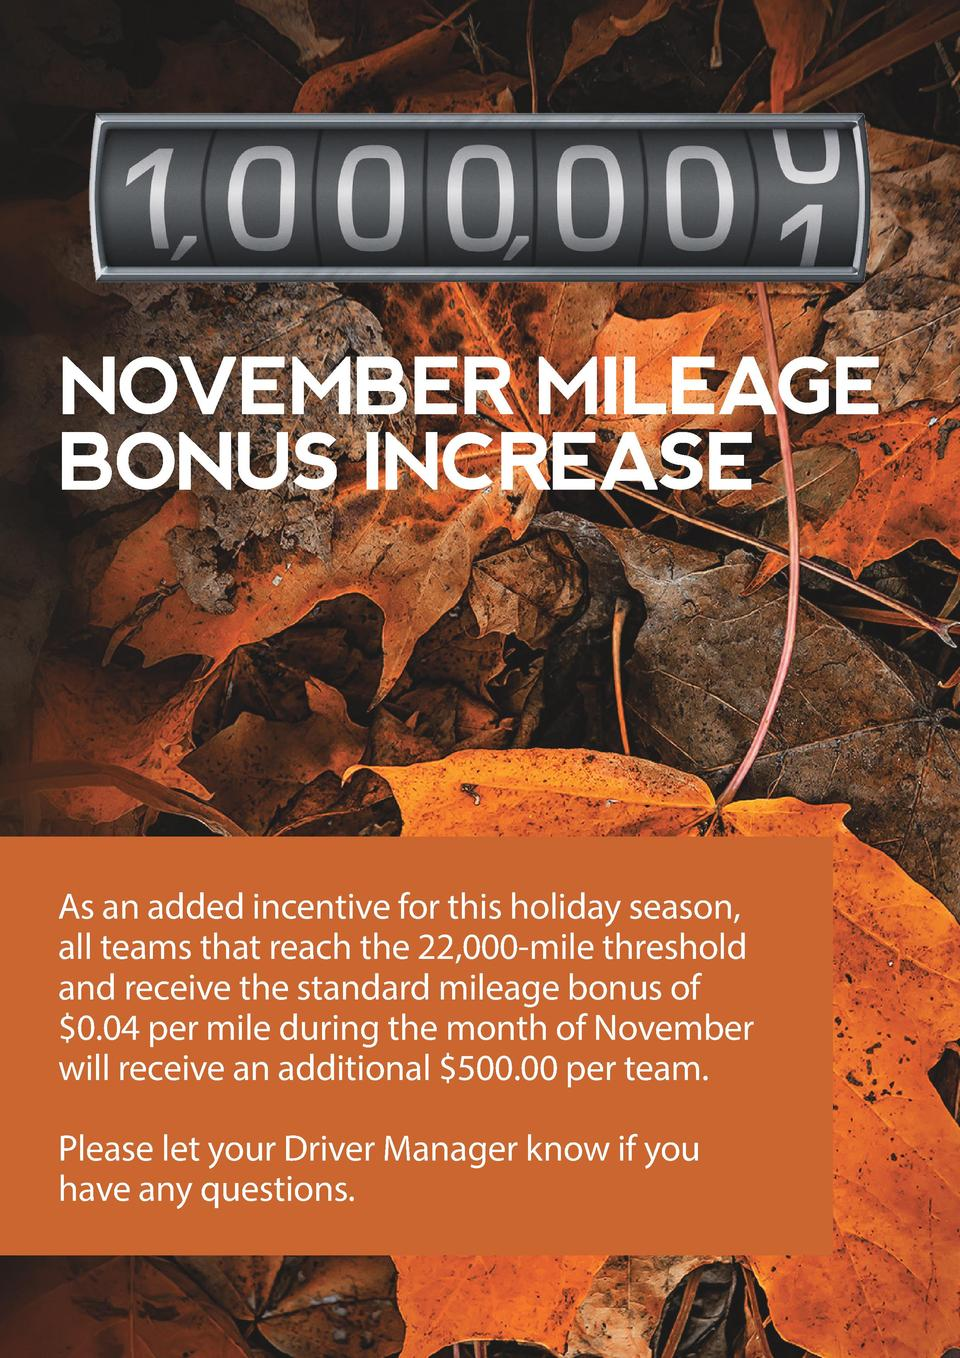 NOVEMBER MILEAGE BONUS INCREASE  As an added incentive for this holiday season, all teams that reach the 22,000-mile thres...